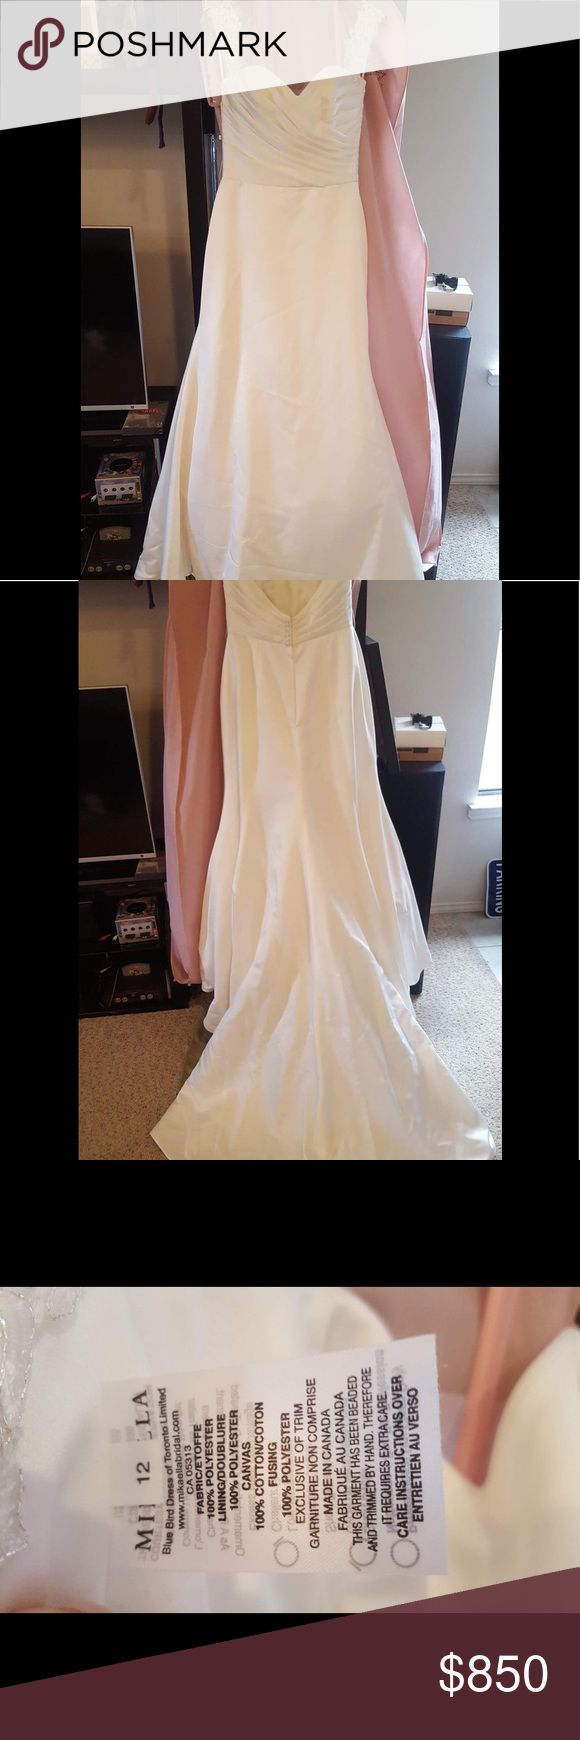 Mikaella wedding gown Gorgeous off-white gown with sweetheart neckline, button accents down the back and embroidered lace straps. Mikaella Dresses Wedding